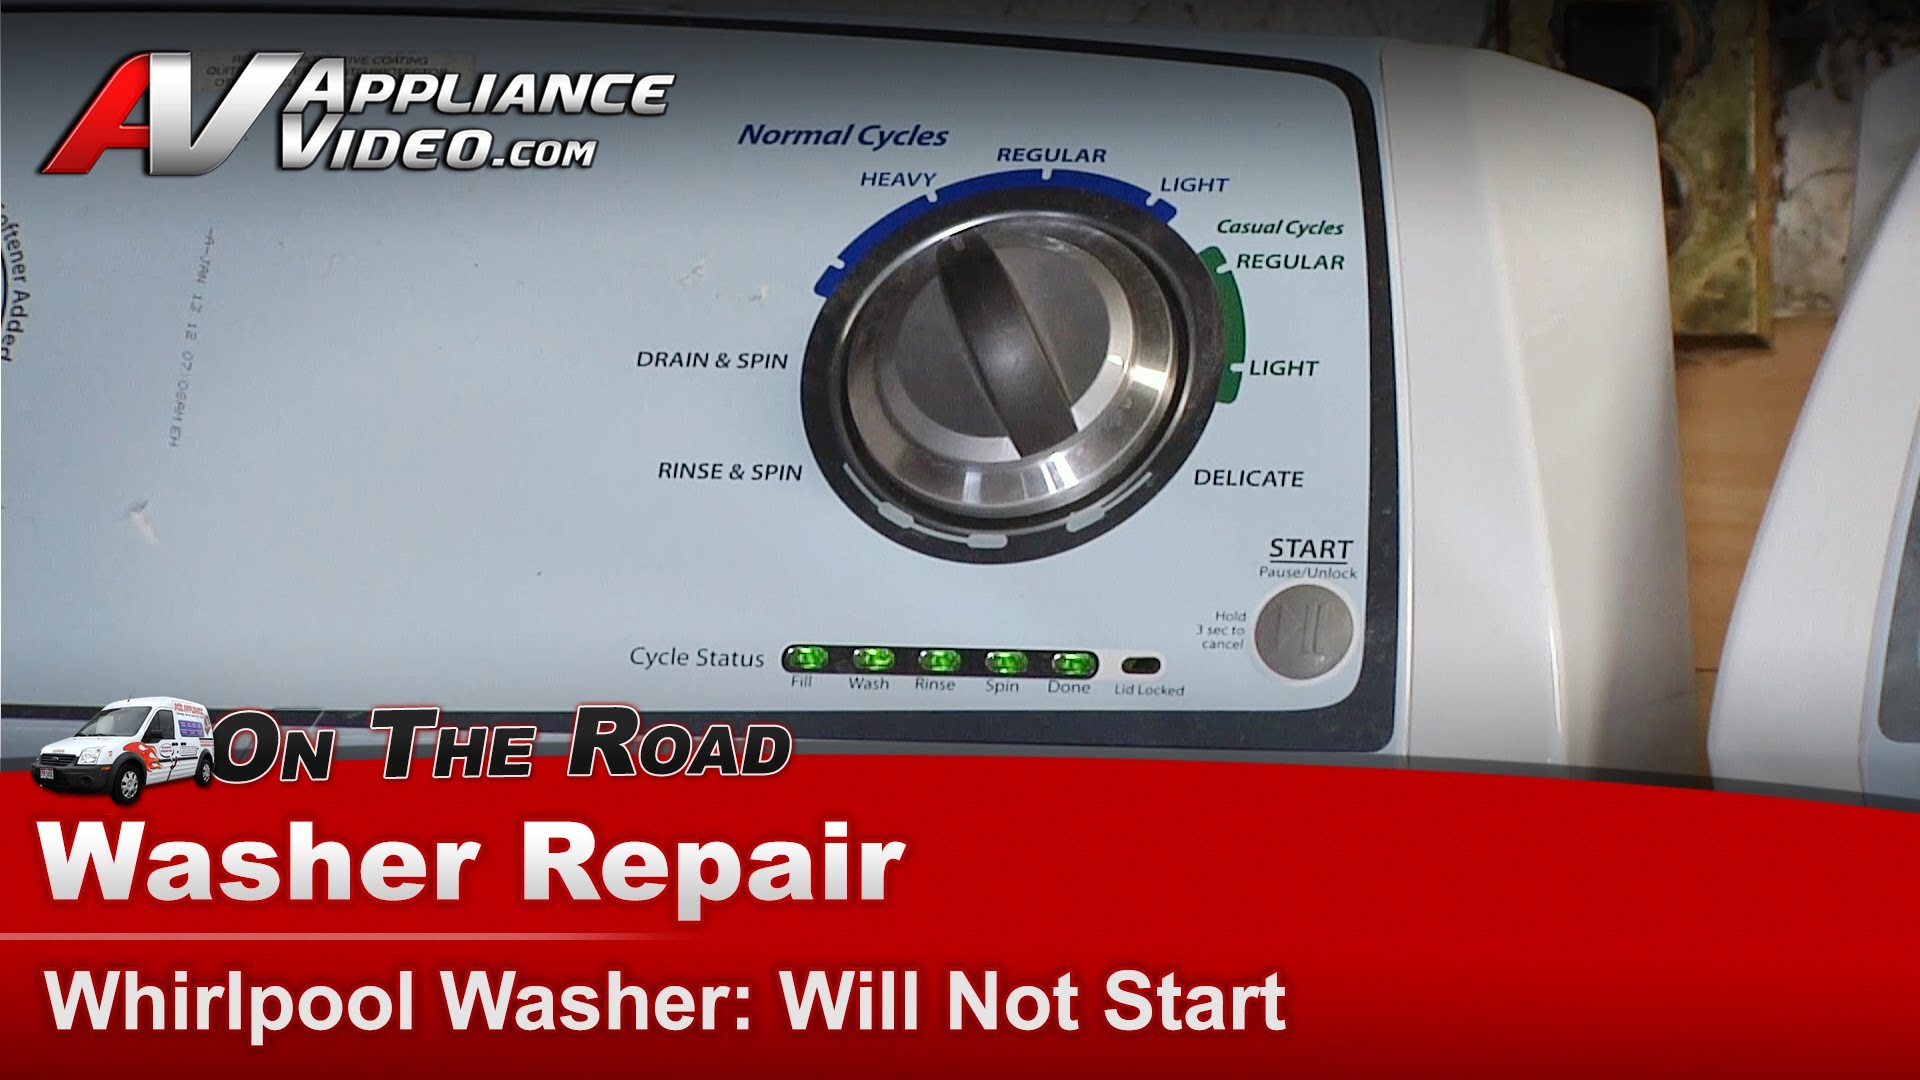 Ovens Whirlpool Wtw4800xq2 Washer Repair – Does Not Start